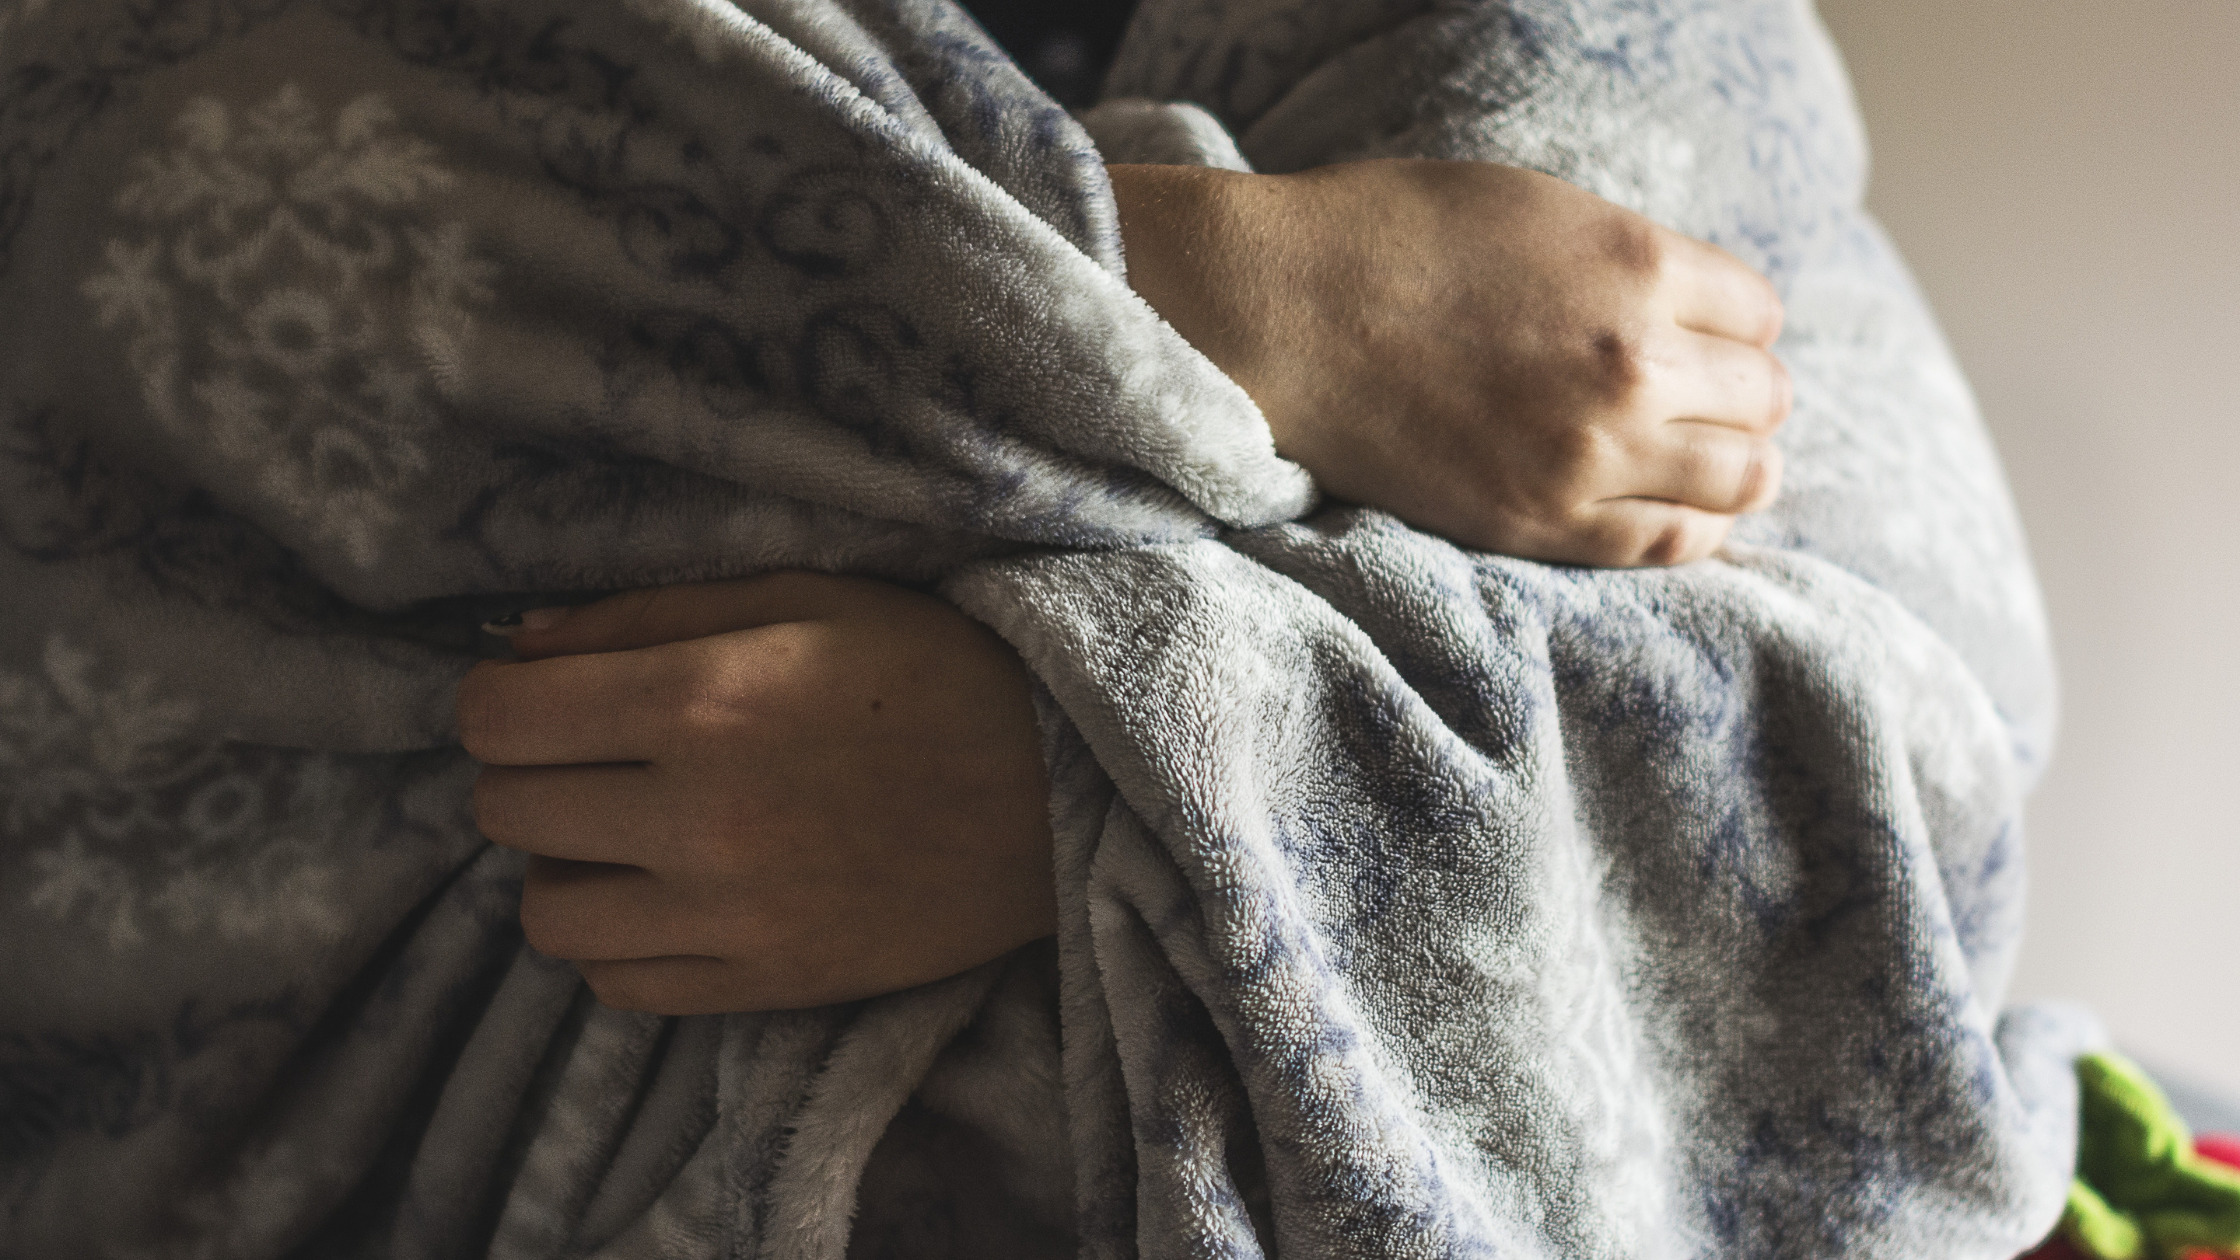 Use A Weighted Blanket To Get Better Sleep, For Anxiety, Depression, And ADHD. Learn How A Weighted Blanket Can Help Reduce Stress And Anxiety.